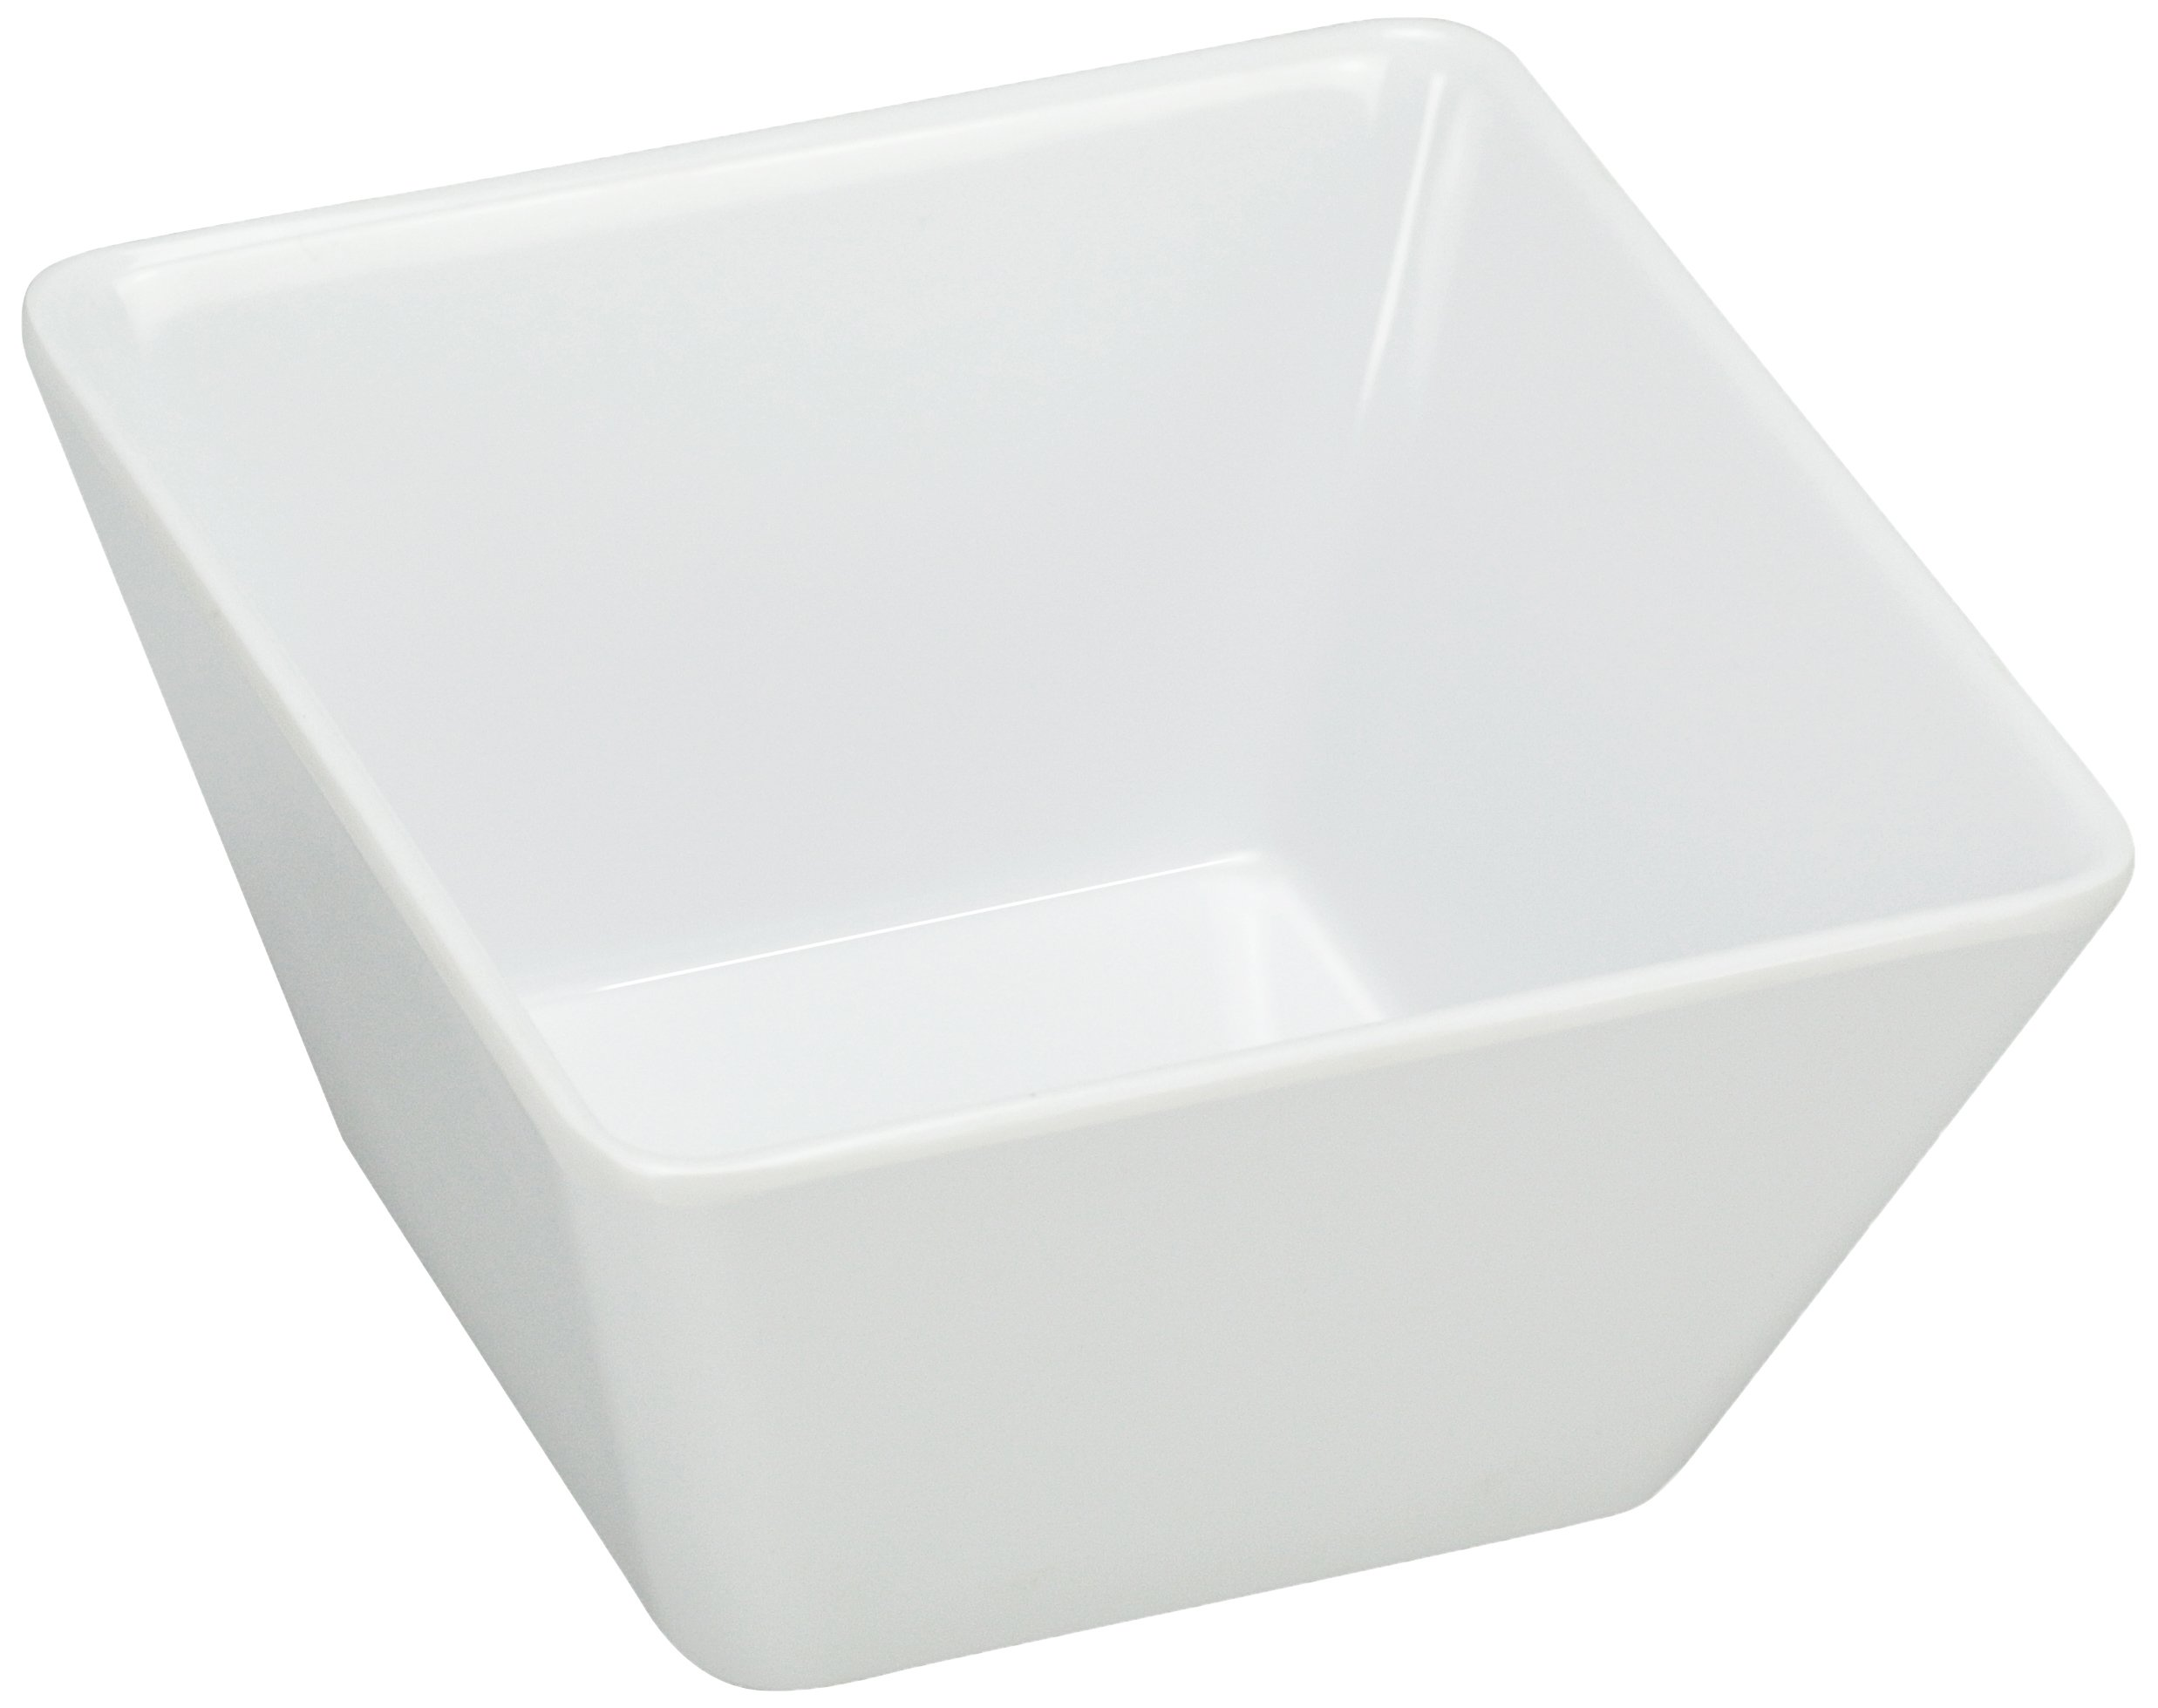 Yanco RM-404 Rome Square Bowl, 10 oz Capacity, 3.75'' Length, 3.75'' Width, 2.5'' Height, Melamine, White Color, Pack of 72